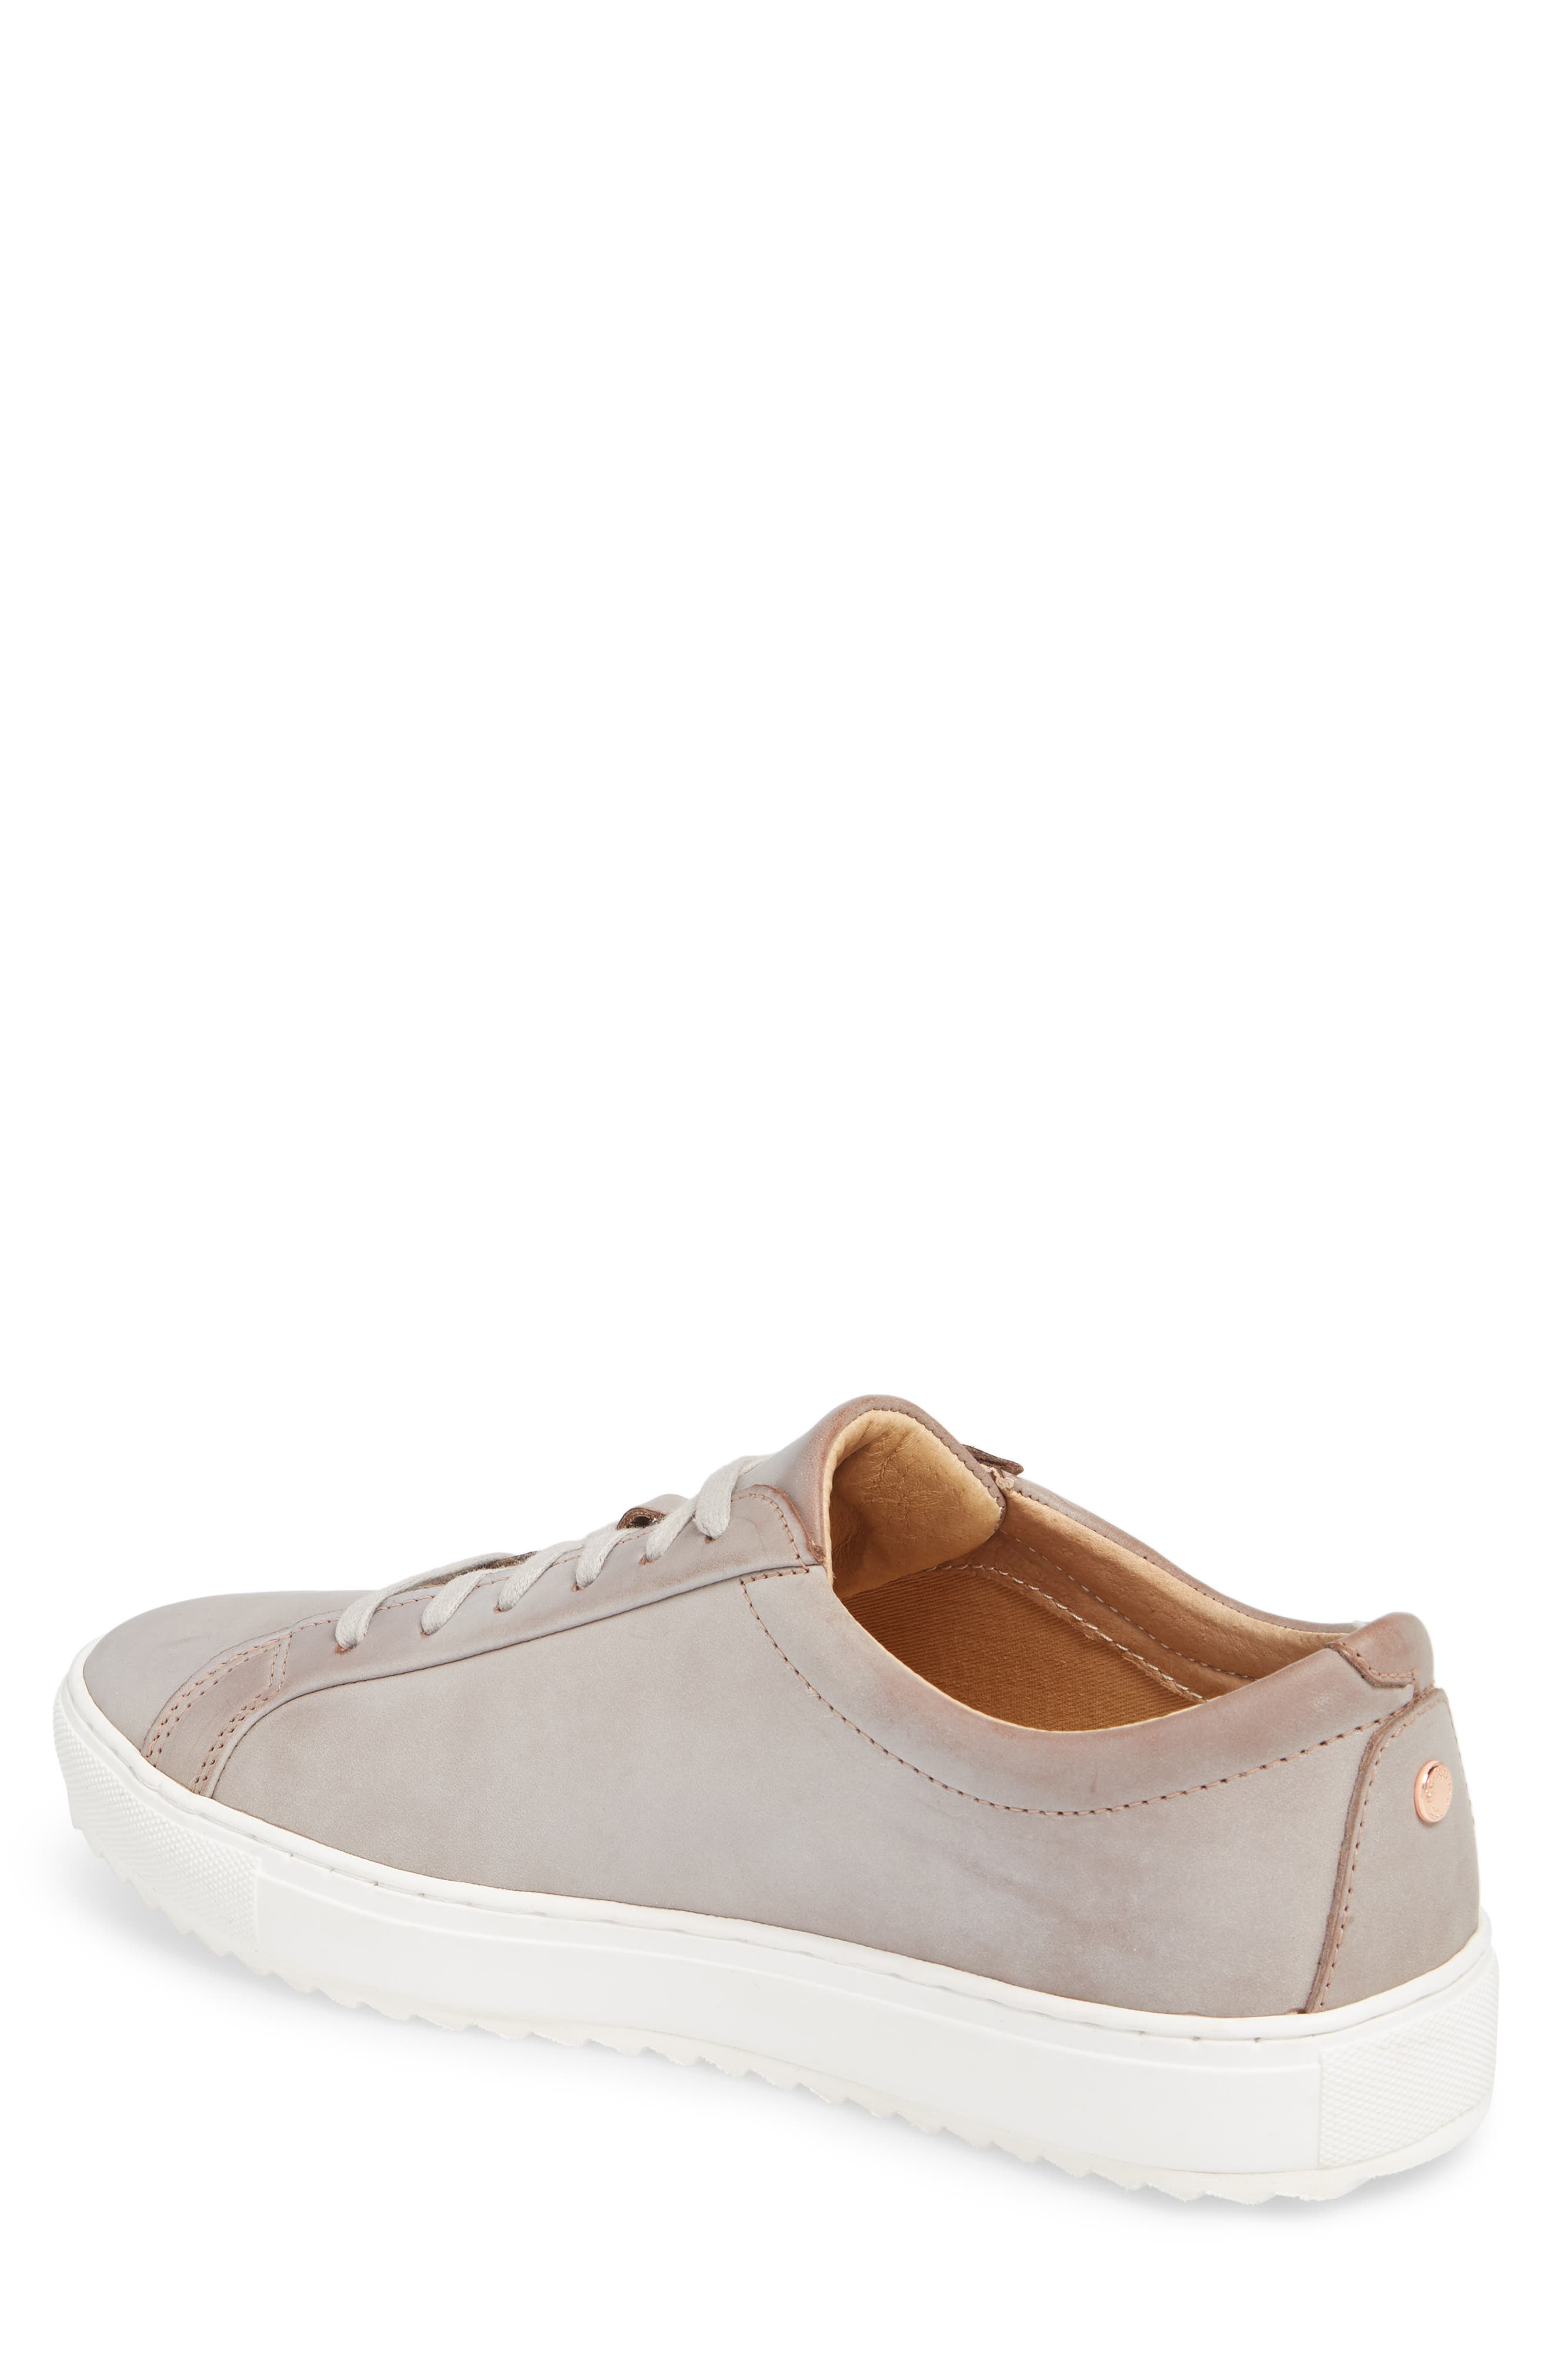 Kennedy Lugged Sneaker,                             Alternate thumbnail 2, color,                             SAND STONE LEATHER